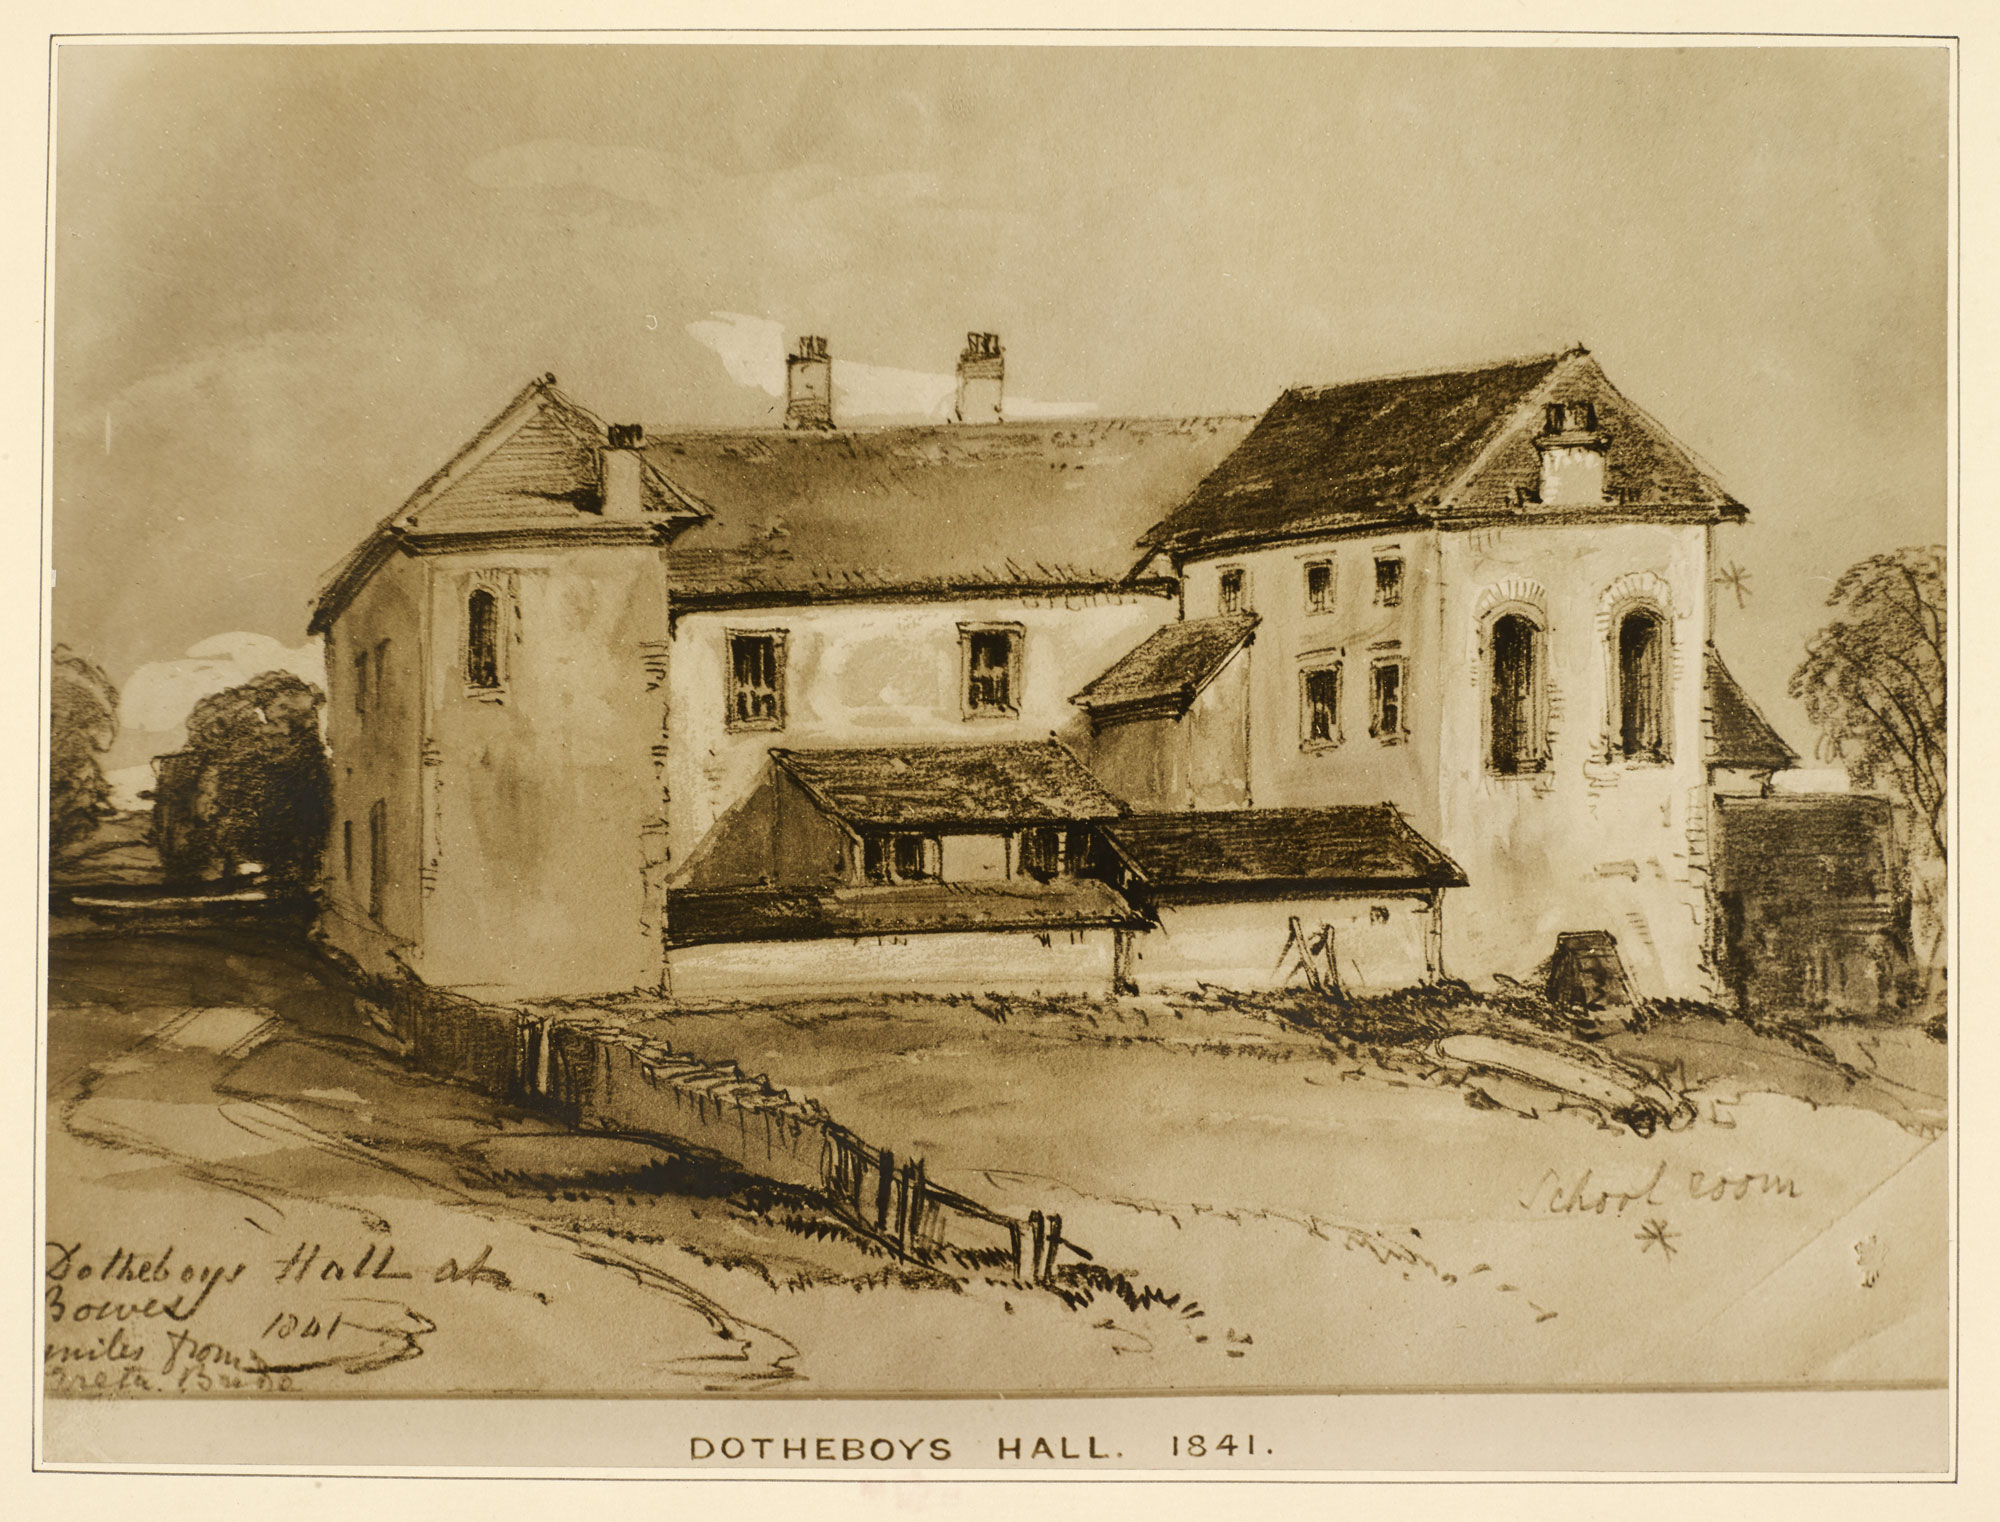 Photographic reproduction of Dotheboys Hall, Bowes, 1841.